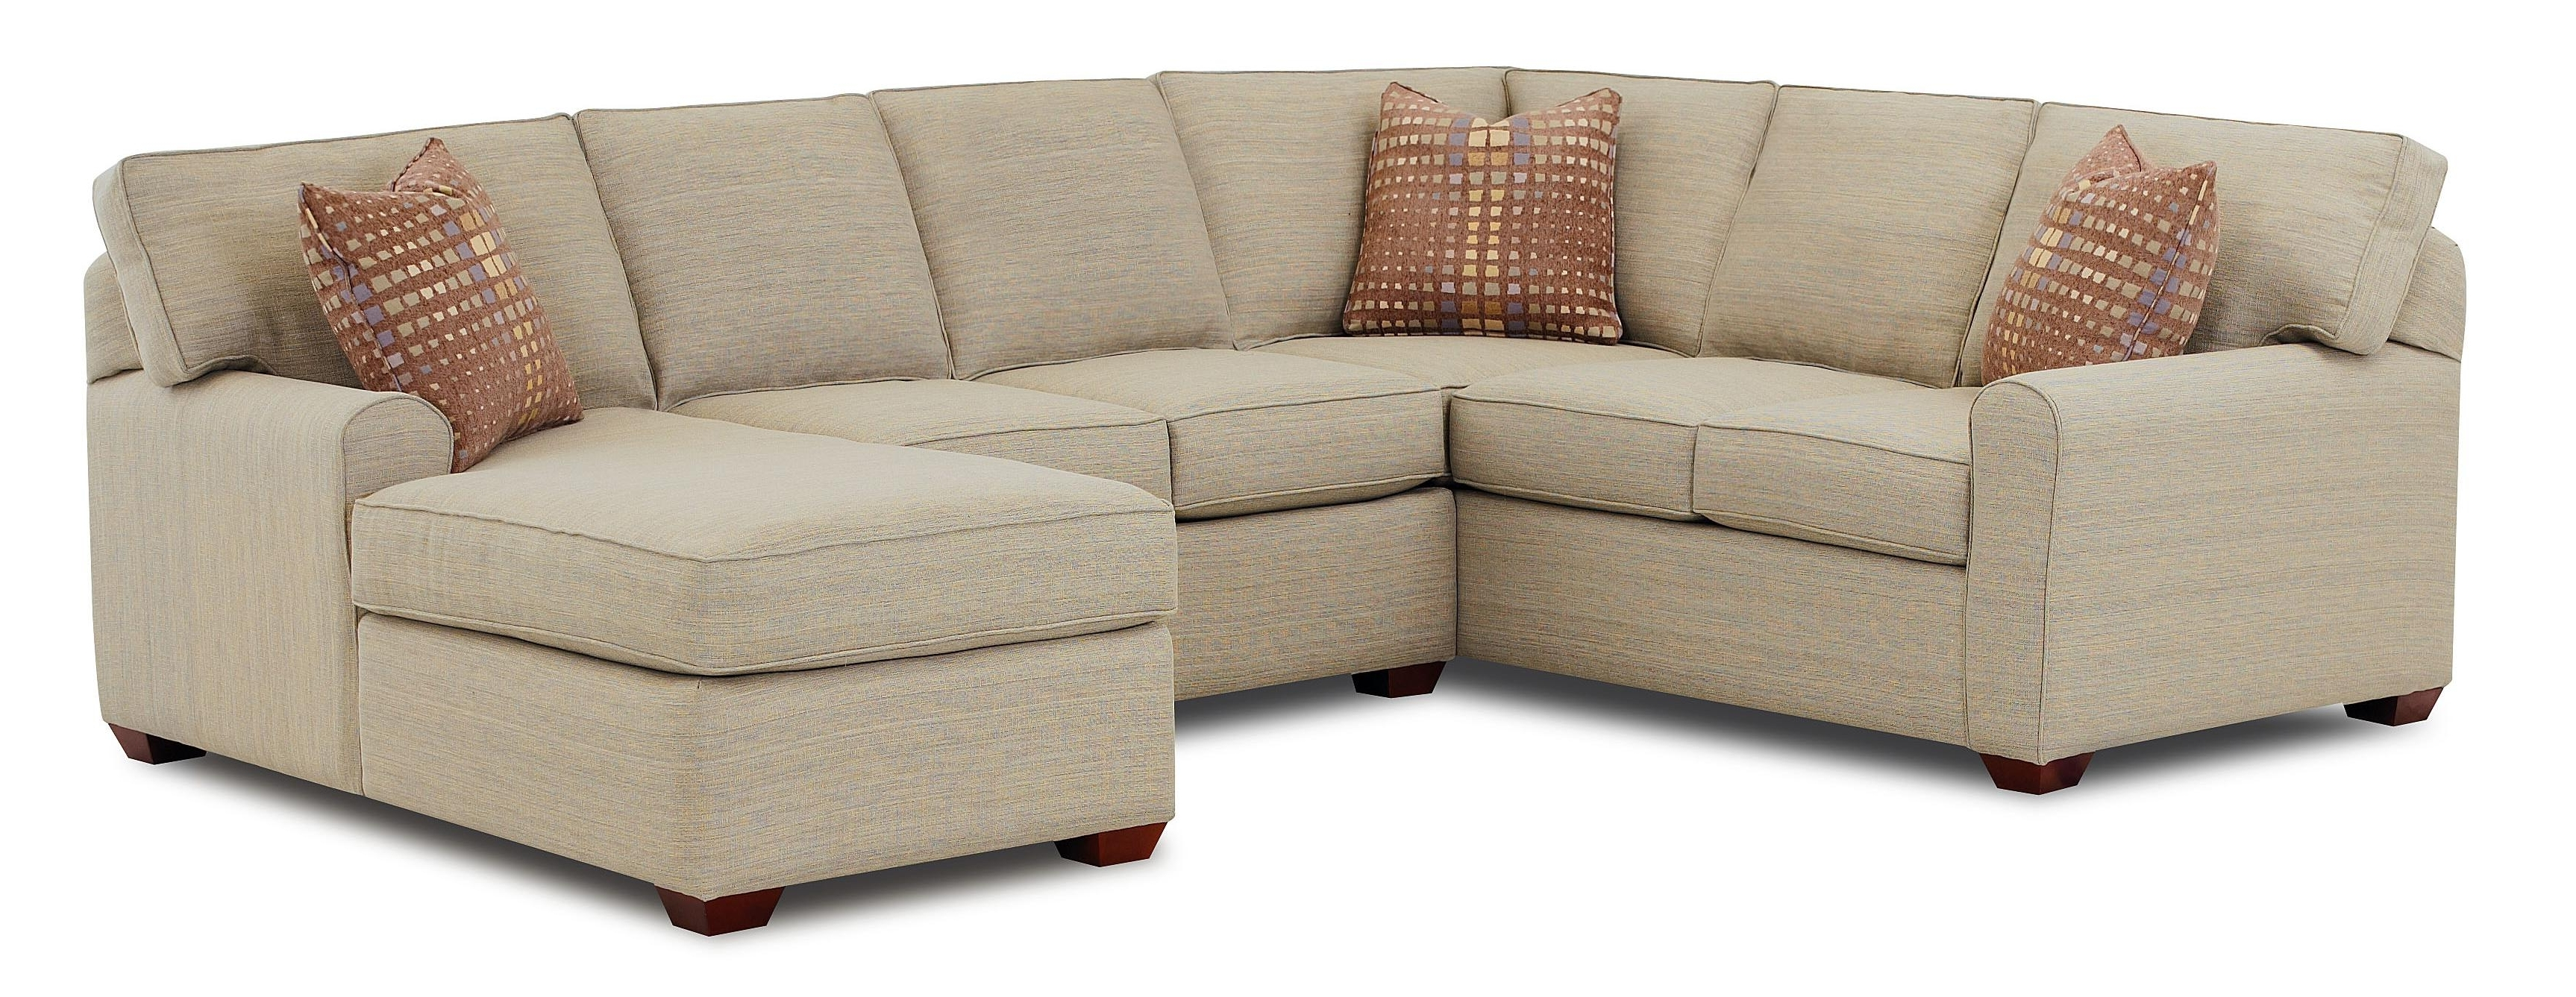 Well Liked Chaise Sofa Sectionals Throughout Furniture: Chaise Sofa Sectional Chaise Sectional (View 9 of 15)